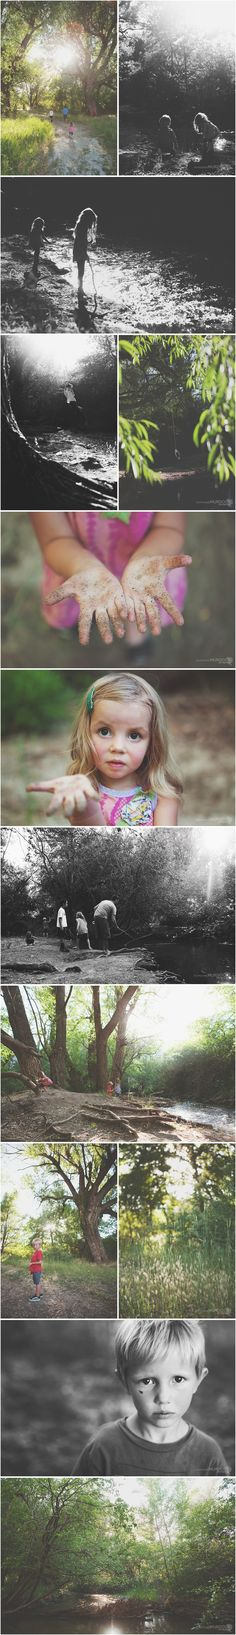 Documentary Inspired | Lifestyle Photography | Real Moments | Raw Emotion | Children Exploring | Sibling Day in the Life